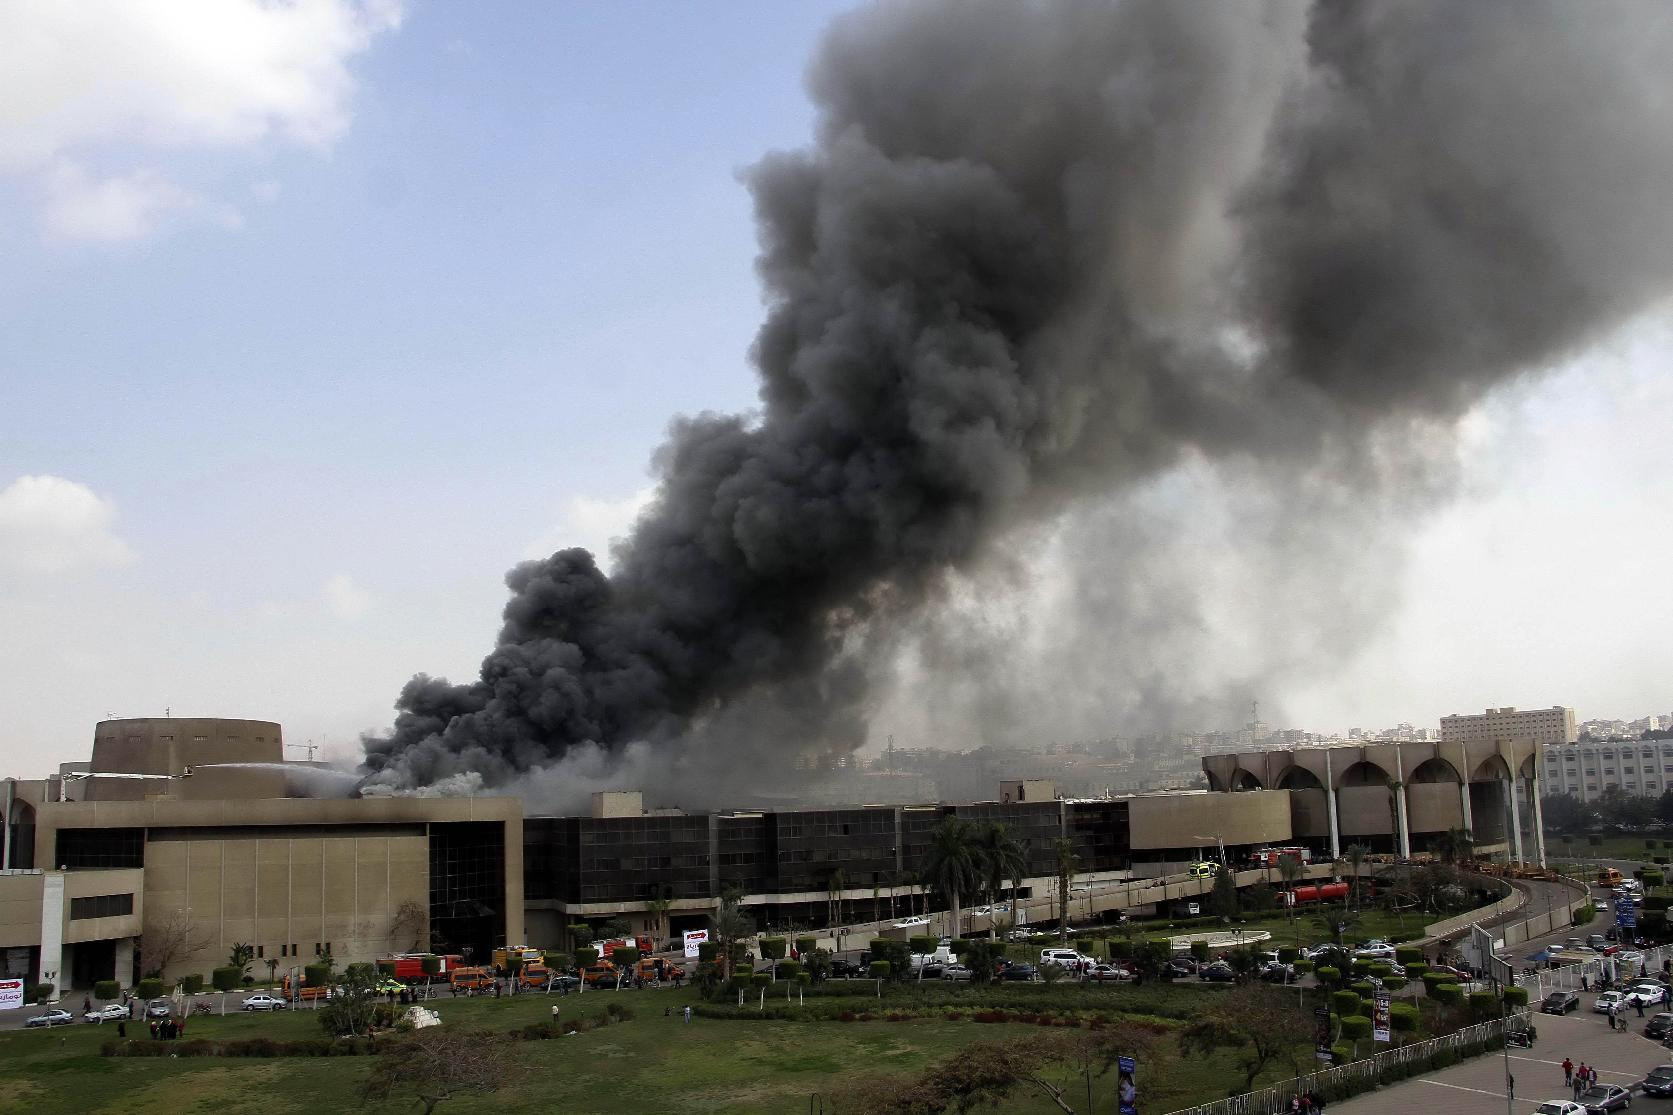 Massive fire at Cairo convention center leaves 19 injured